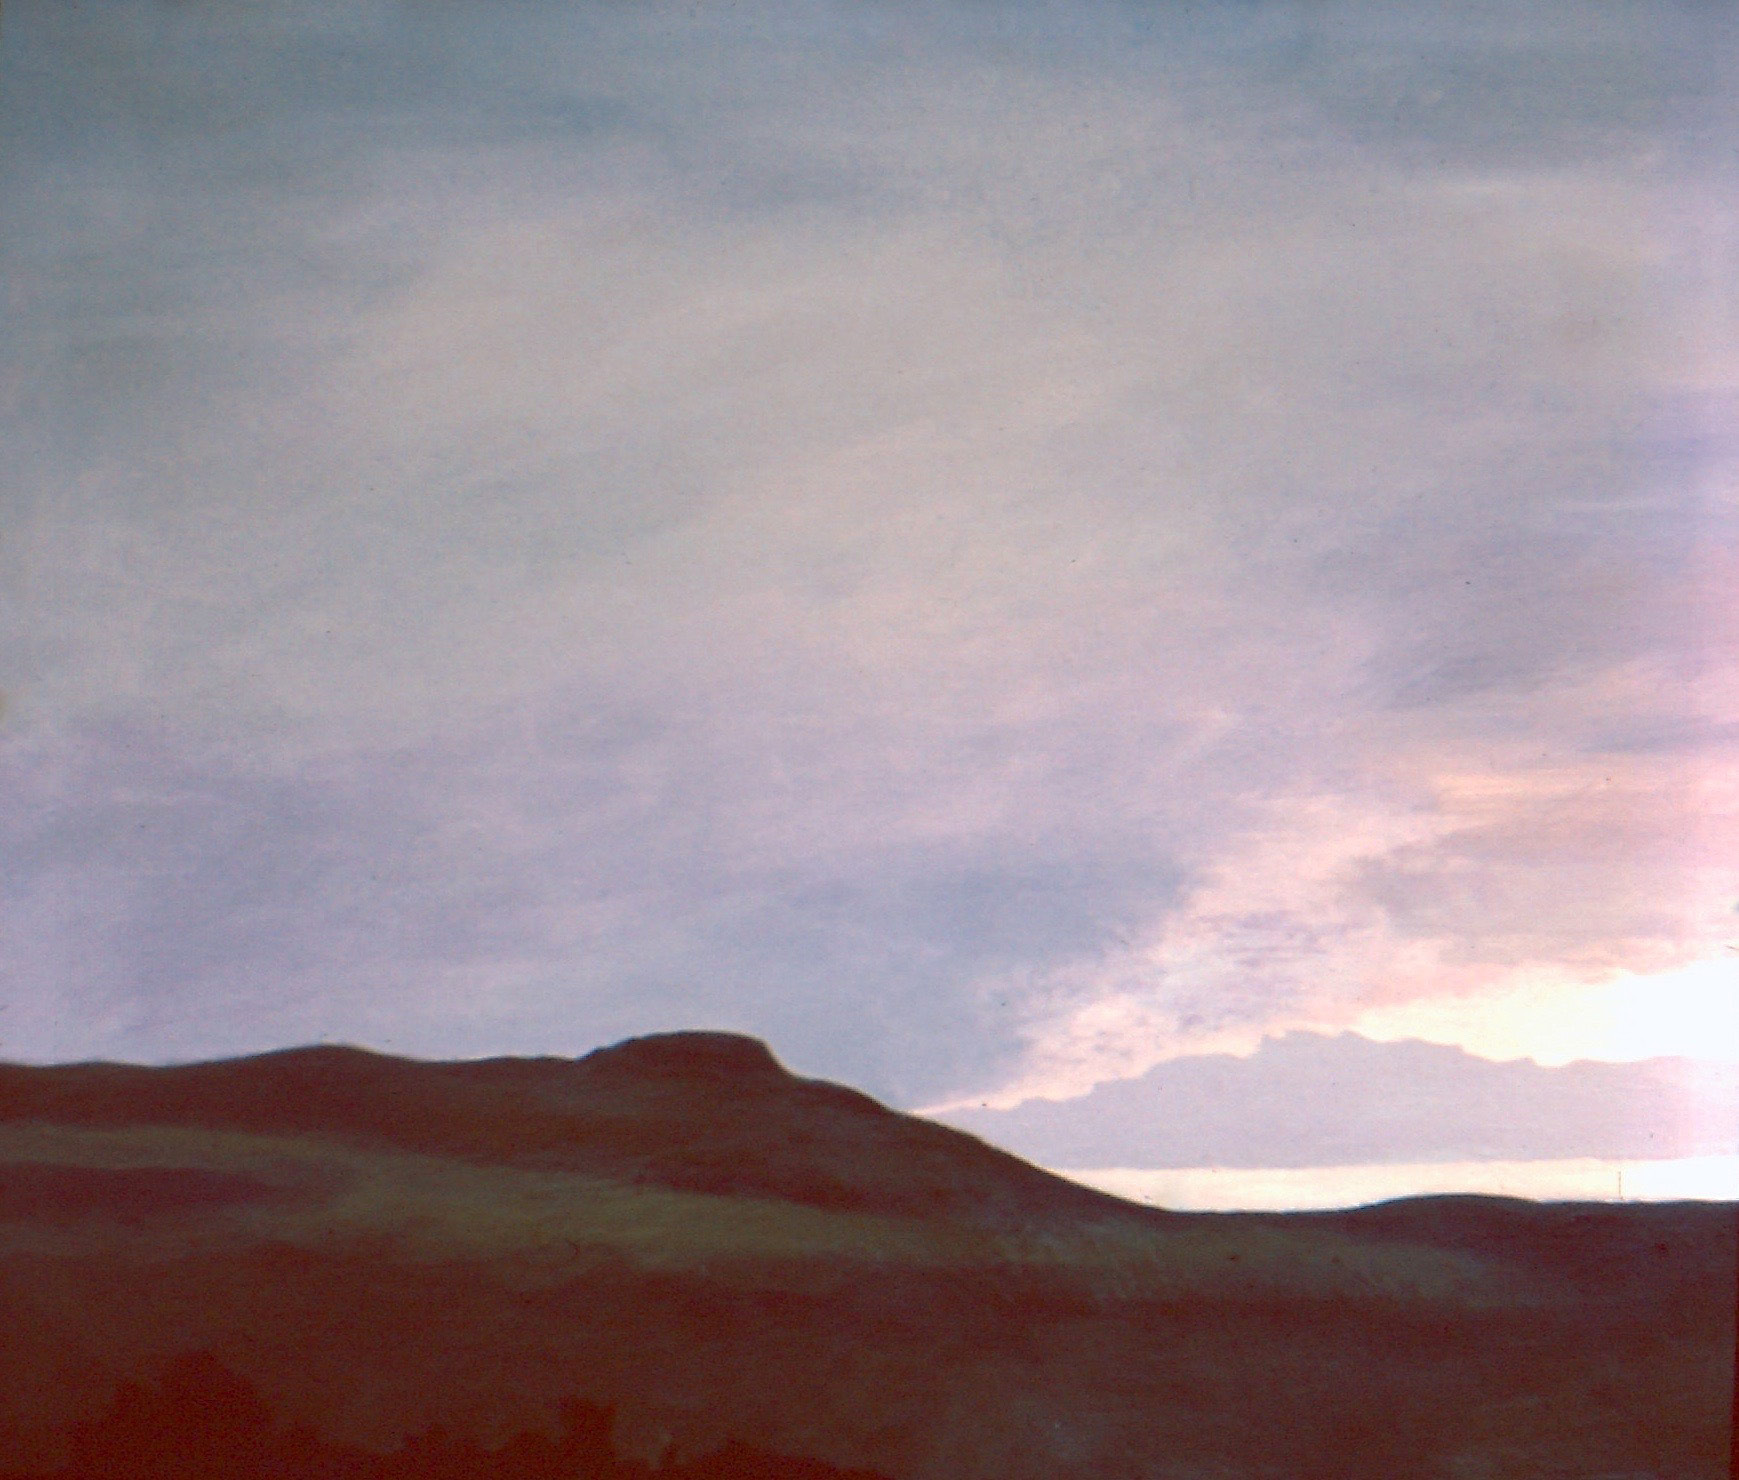 """""""Storm in the Flint Hills,"""" Acrylic on canvas, 24 x 30 inches, by Jane Pronko, 1975"""